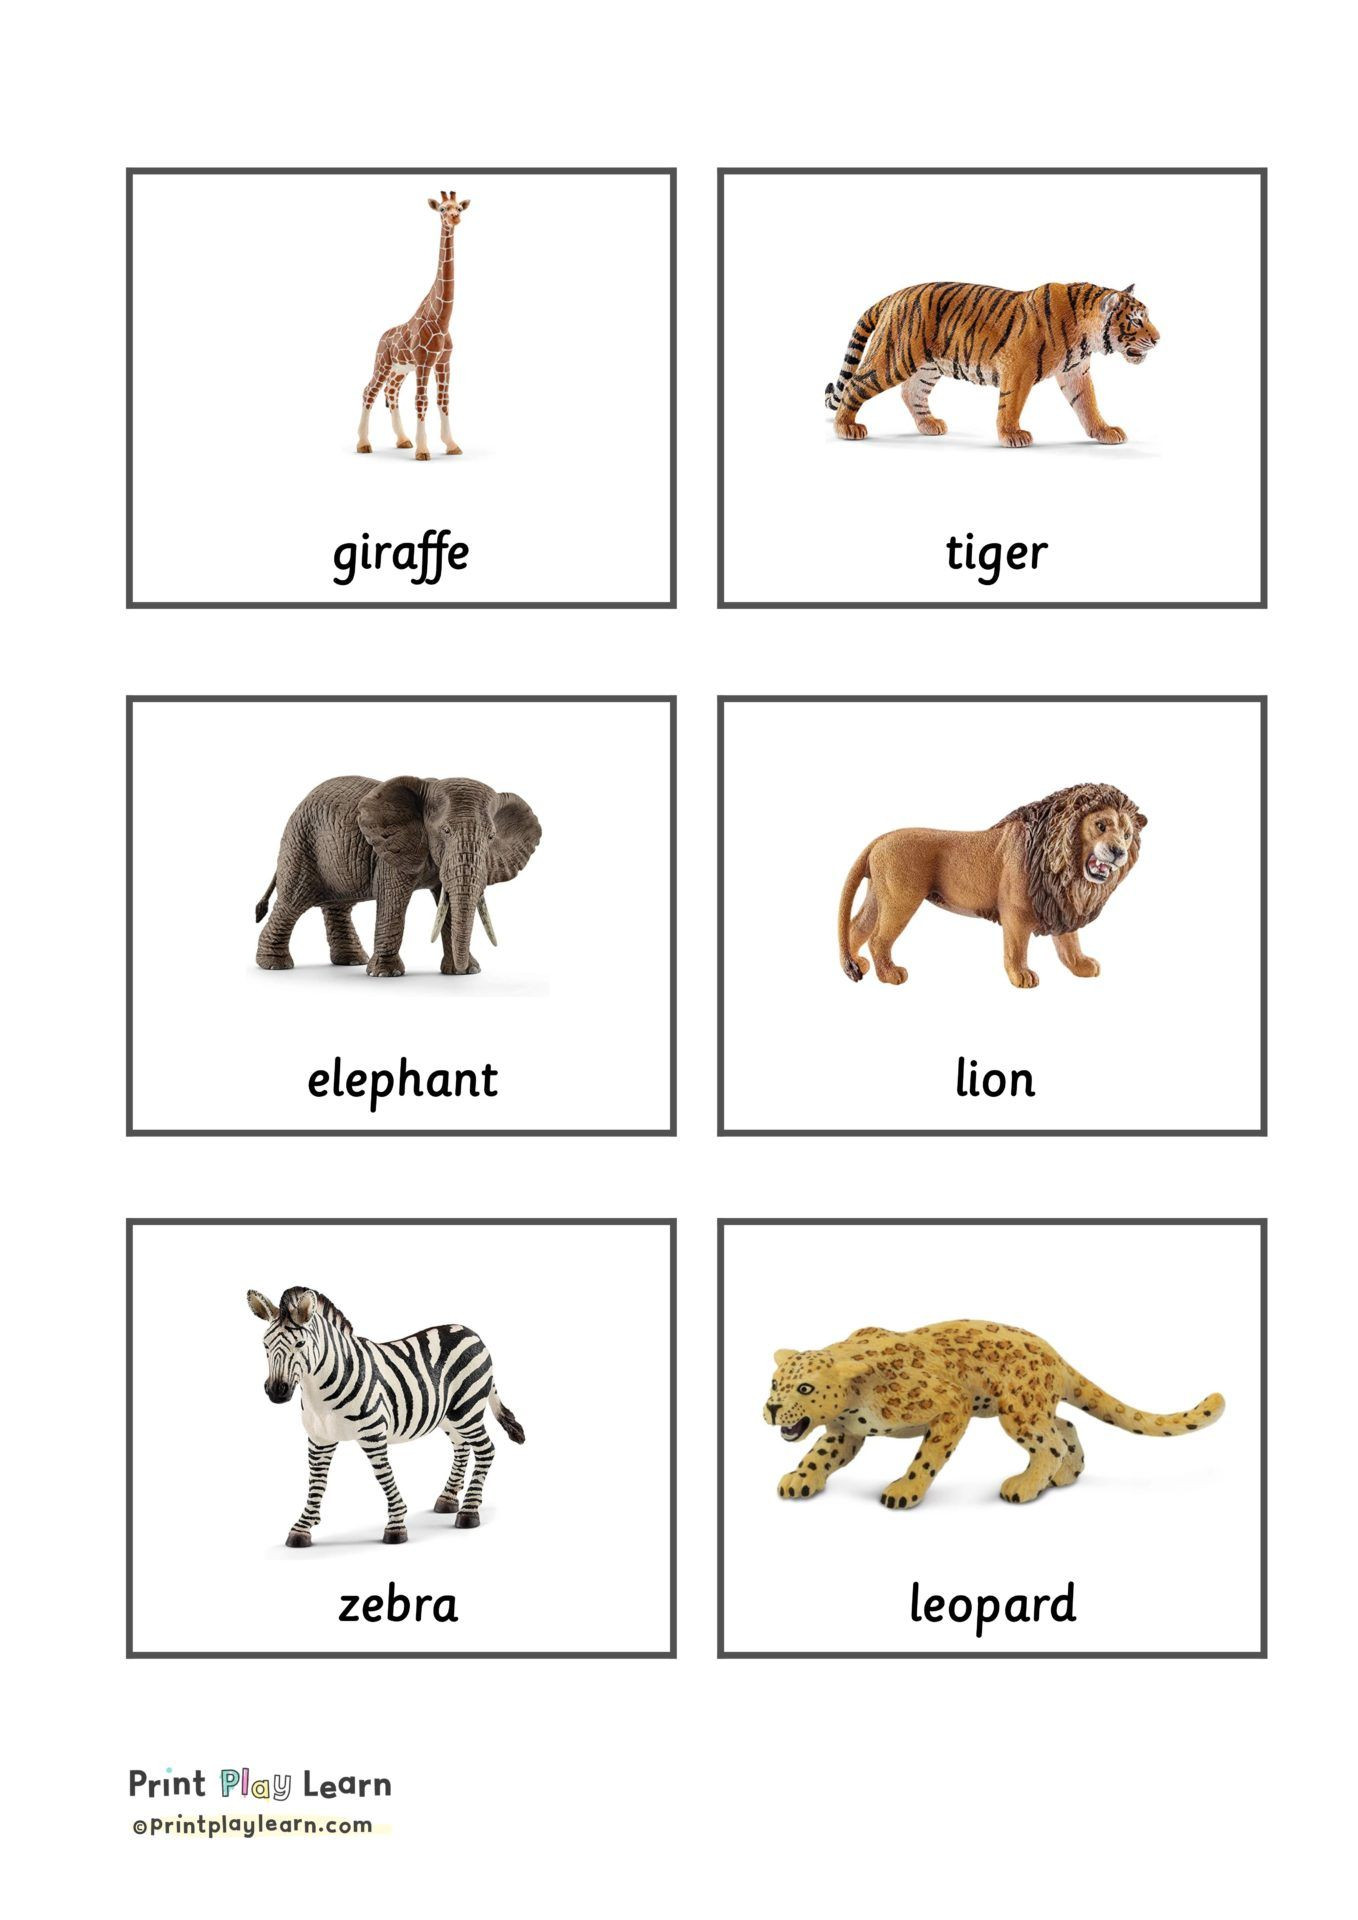 Free Printable Animal Classification Worksheets